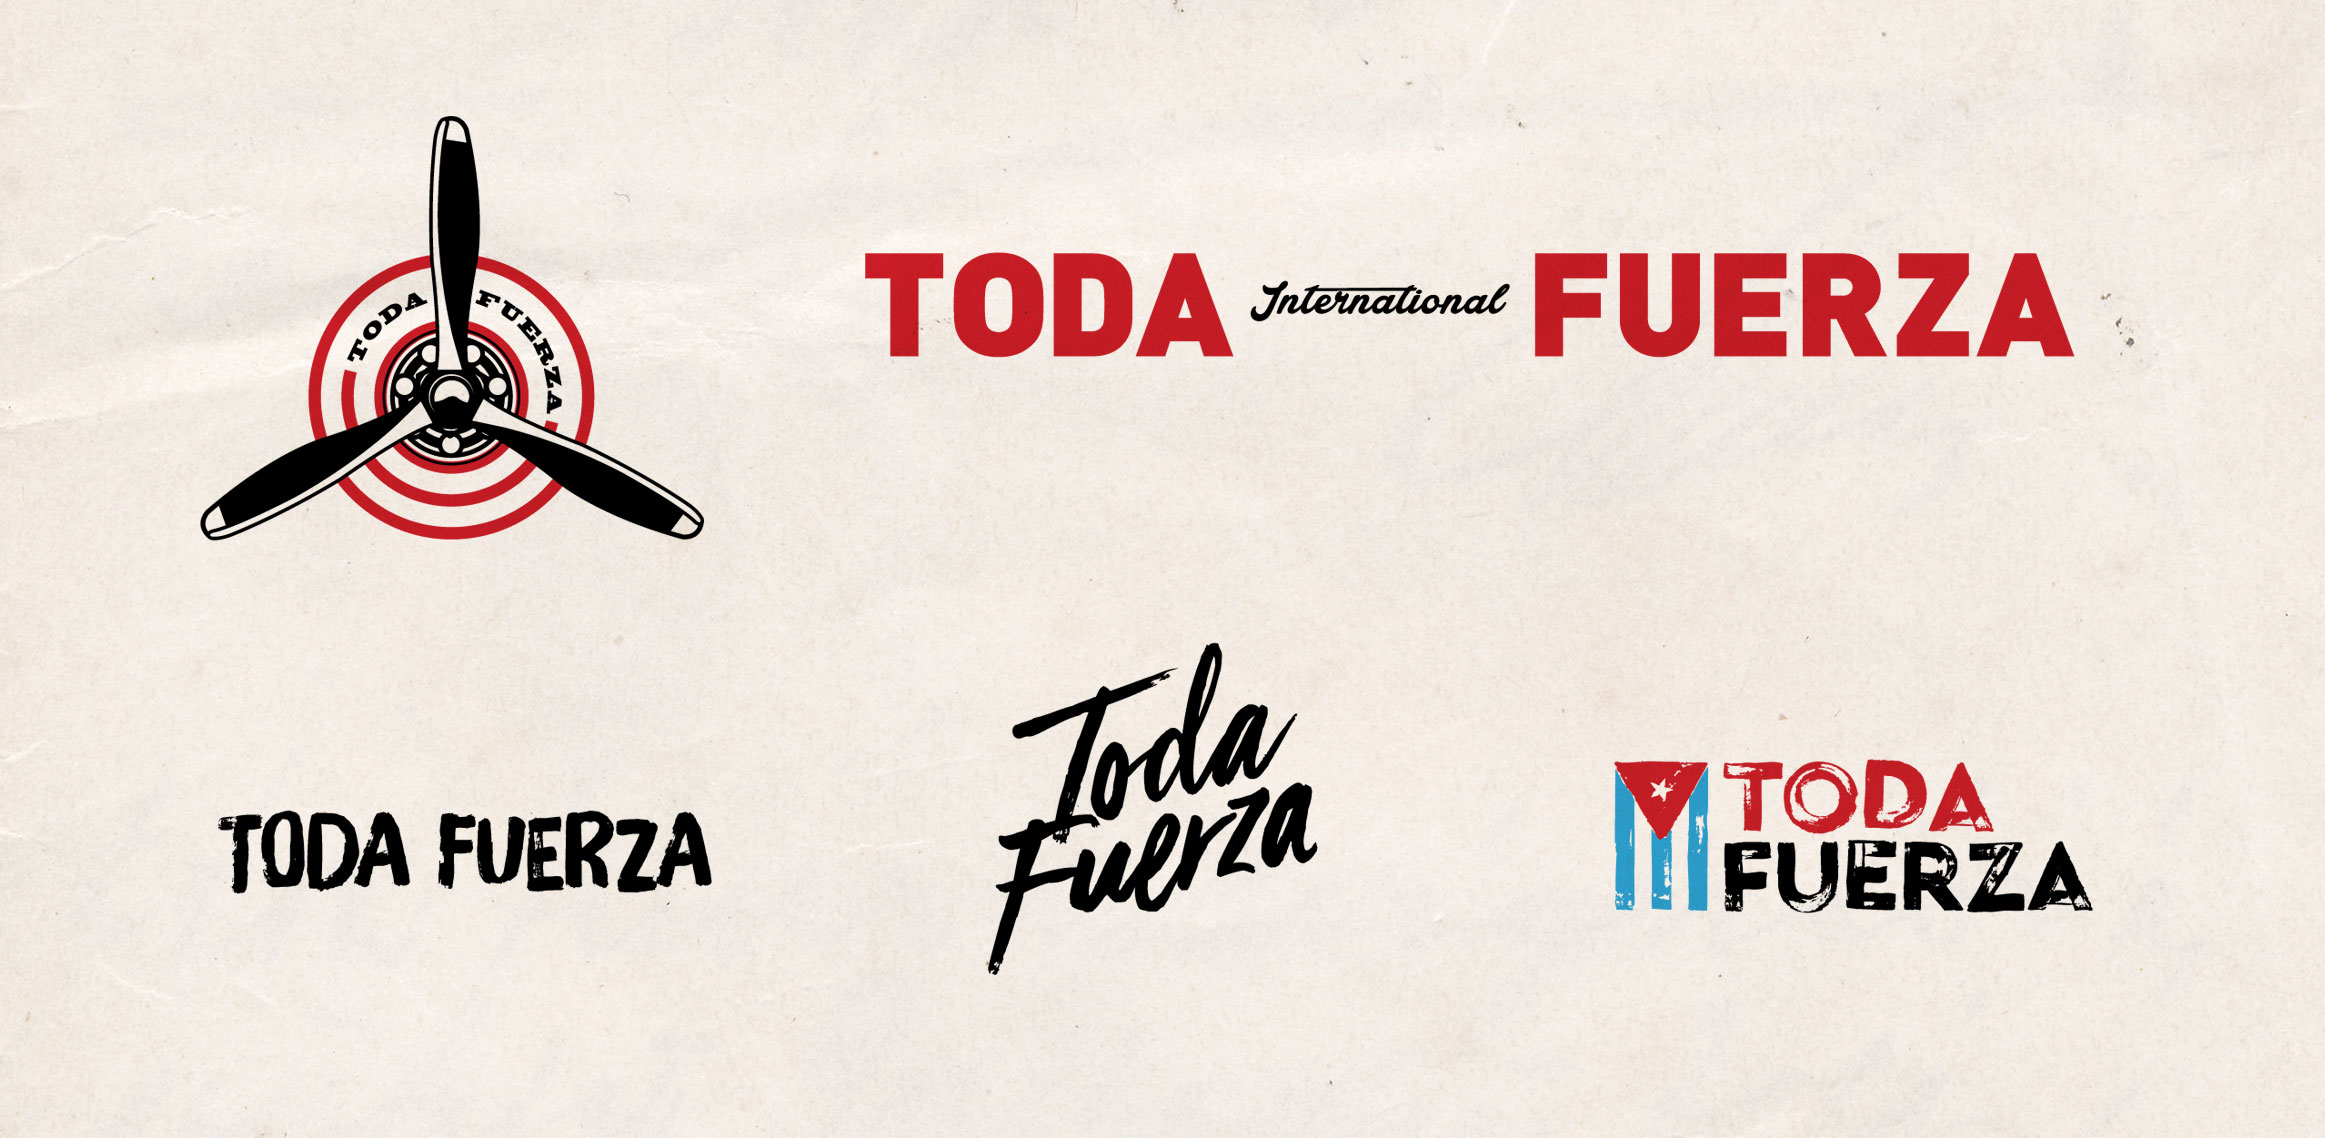 Toda Fuerza graphics and brand styling.